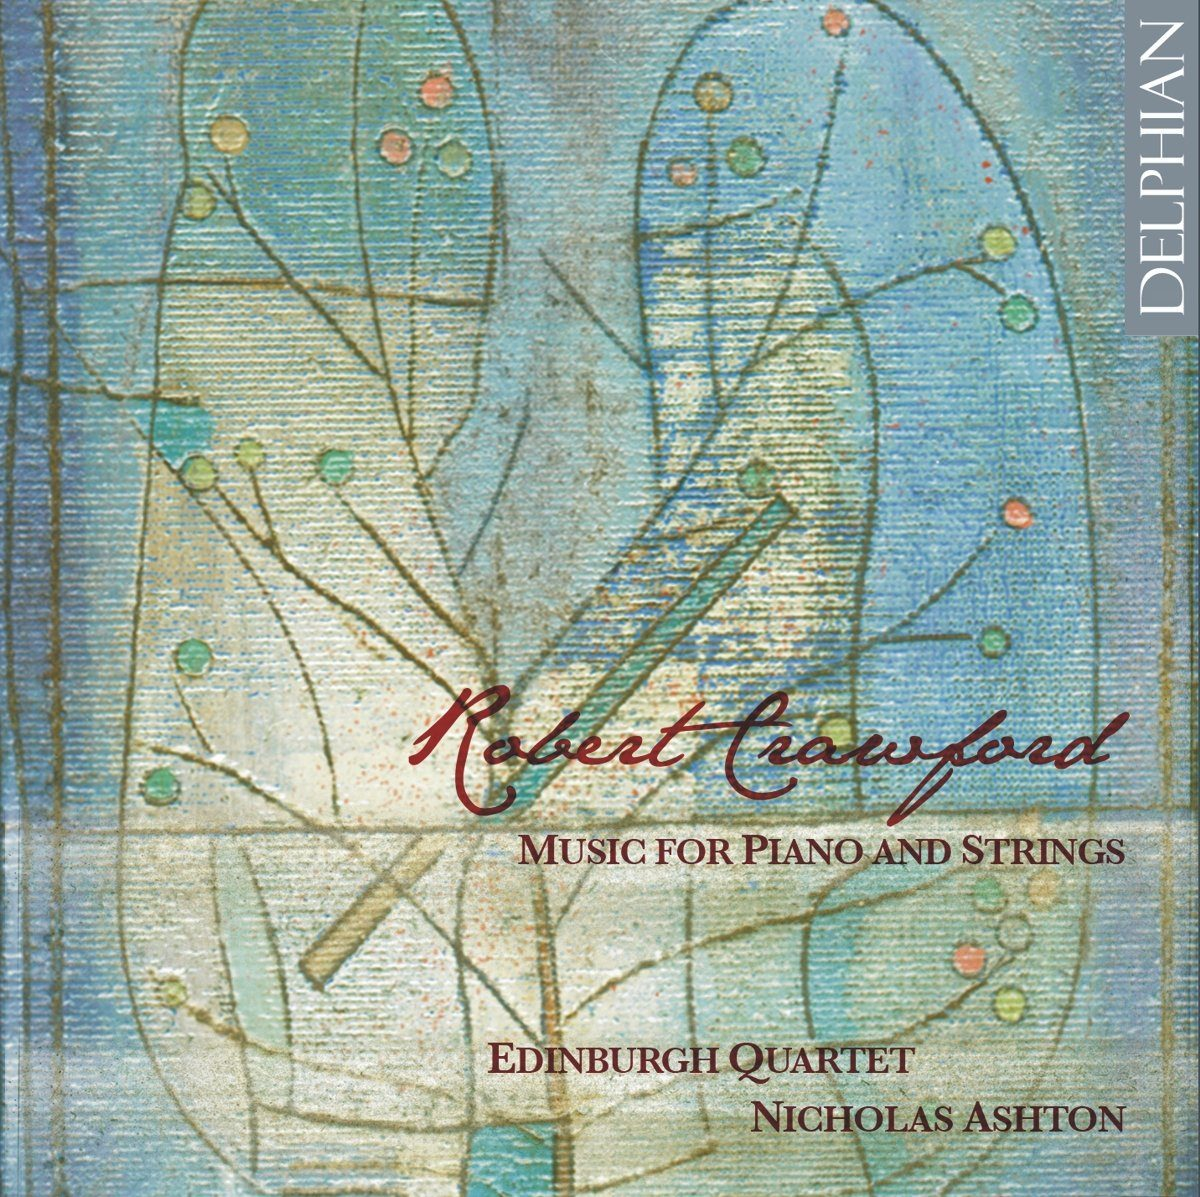 Robert Crawford: Music for solo piano; Piano Quintet CD Delphian Records